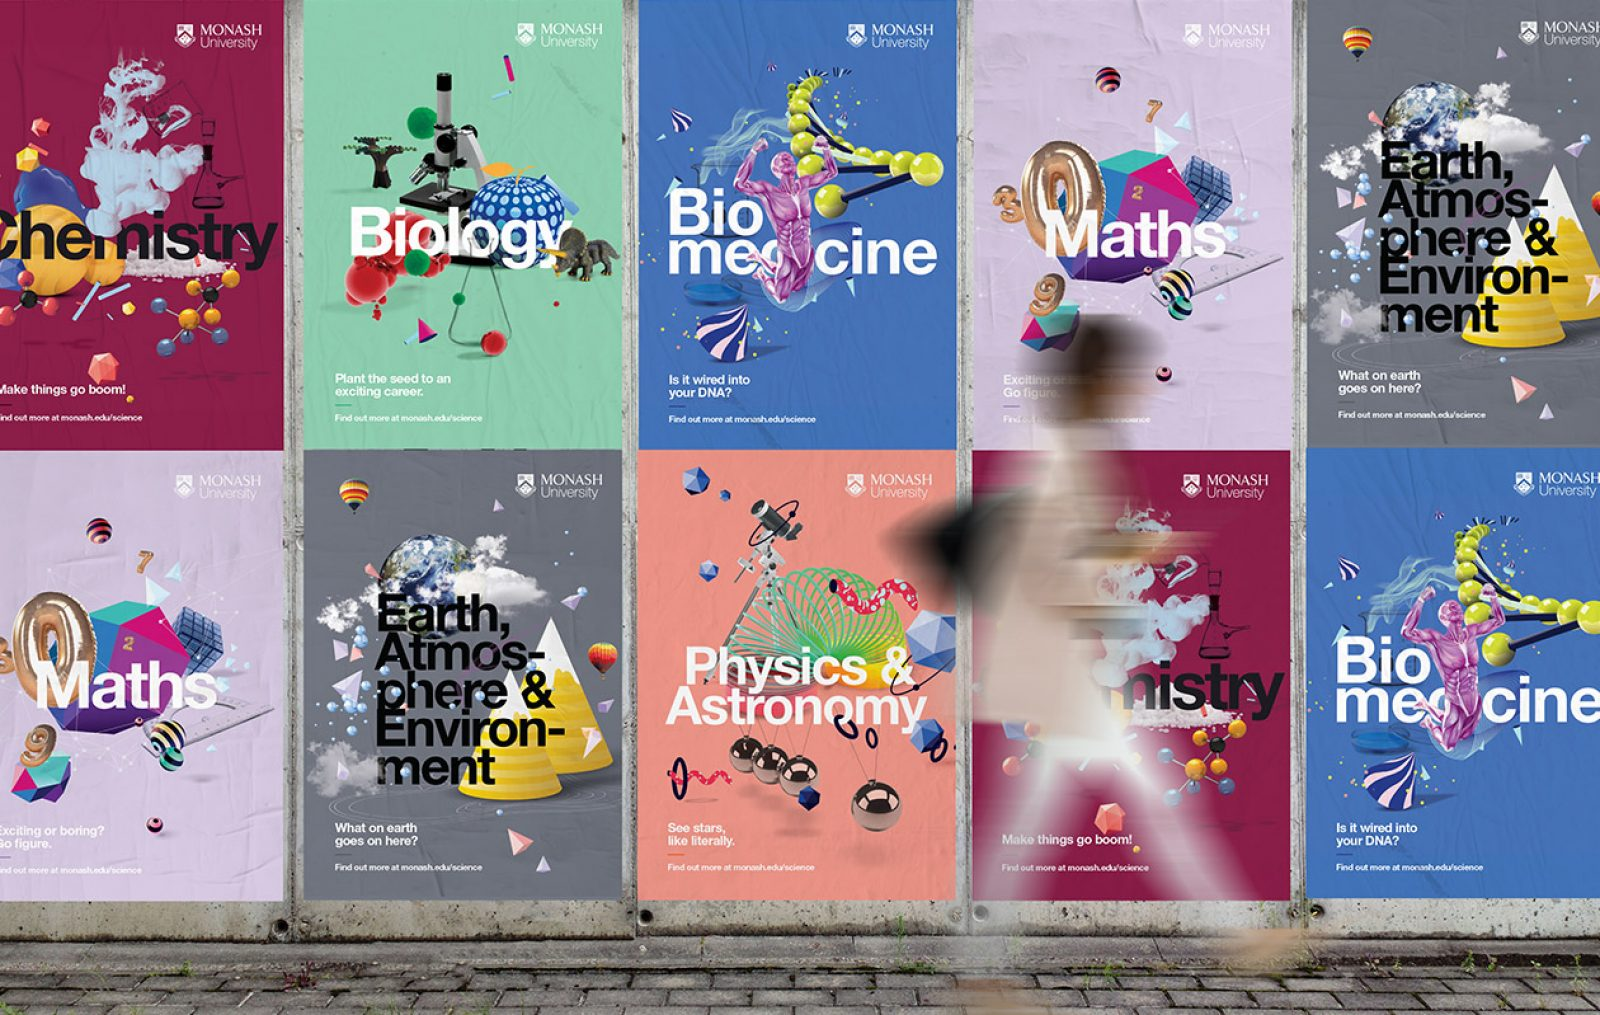 Monash Science Careers Guide promotional posters in a street setting